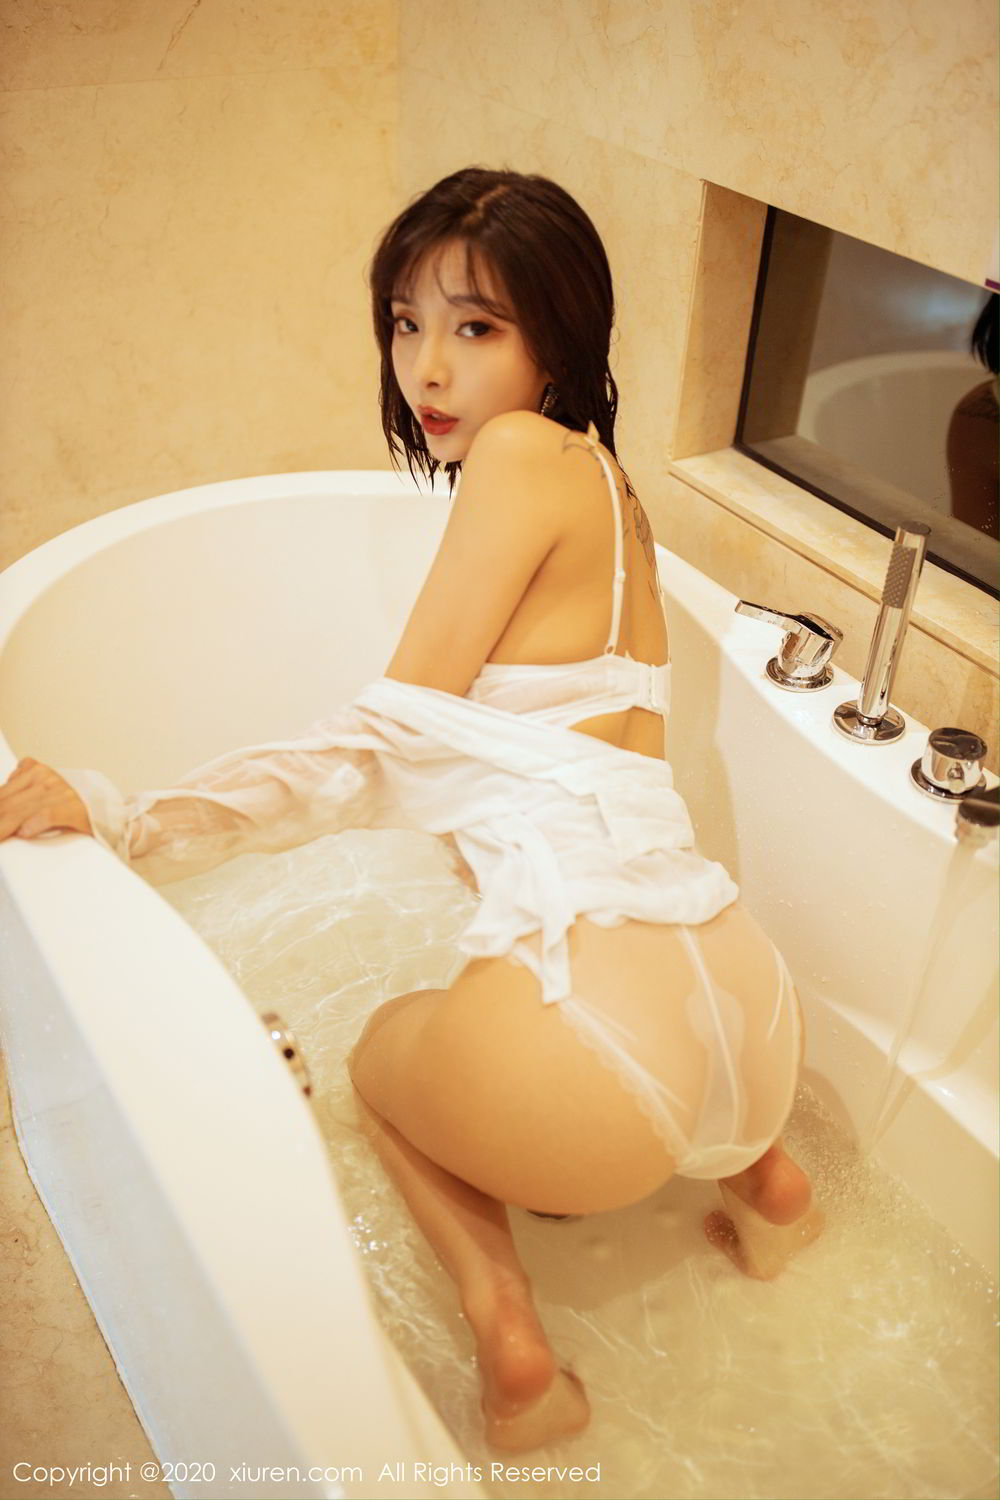 [XiuRen] Vol.2158 Chen Xiao Miao 63P, Bathroom, Chen Xiao Miao, Tall, Wet, Xiuren